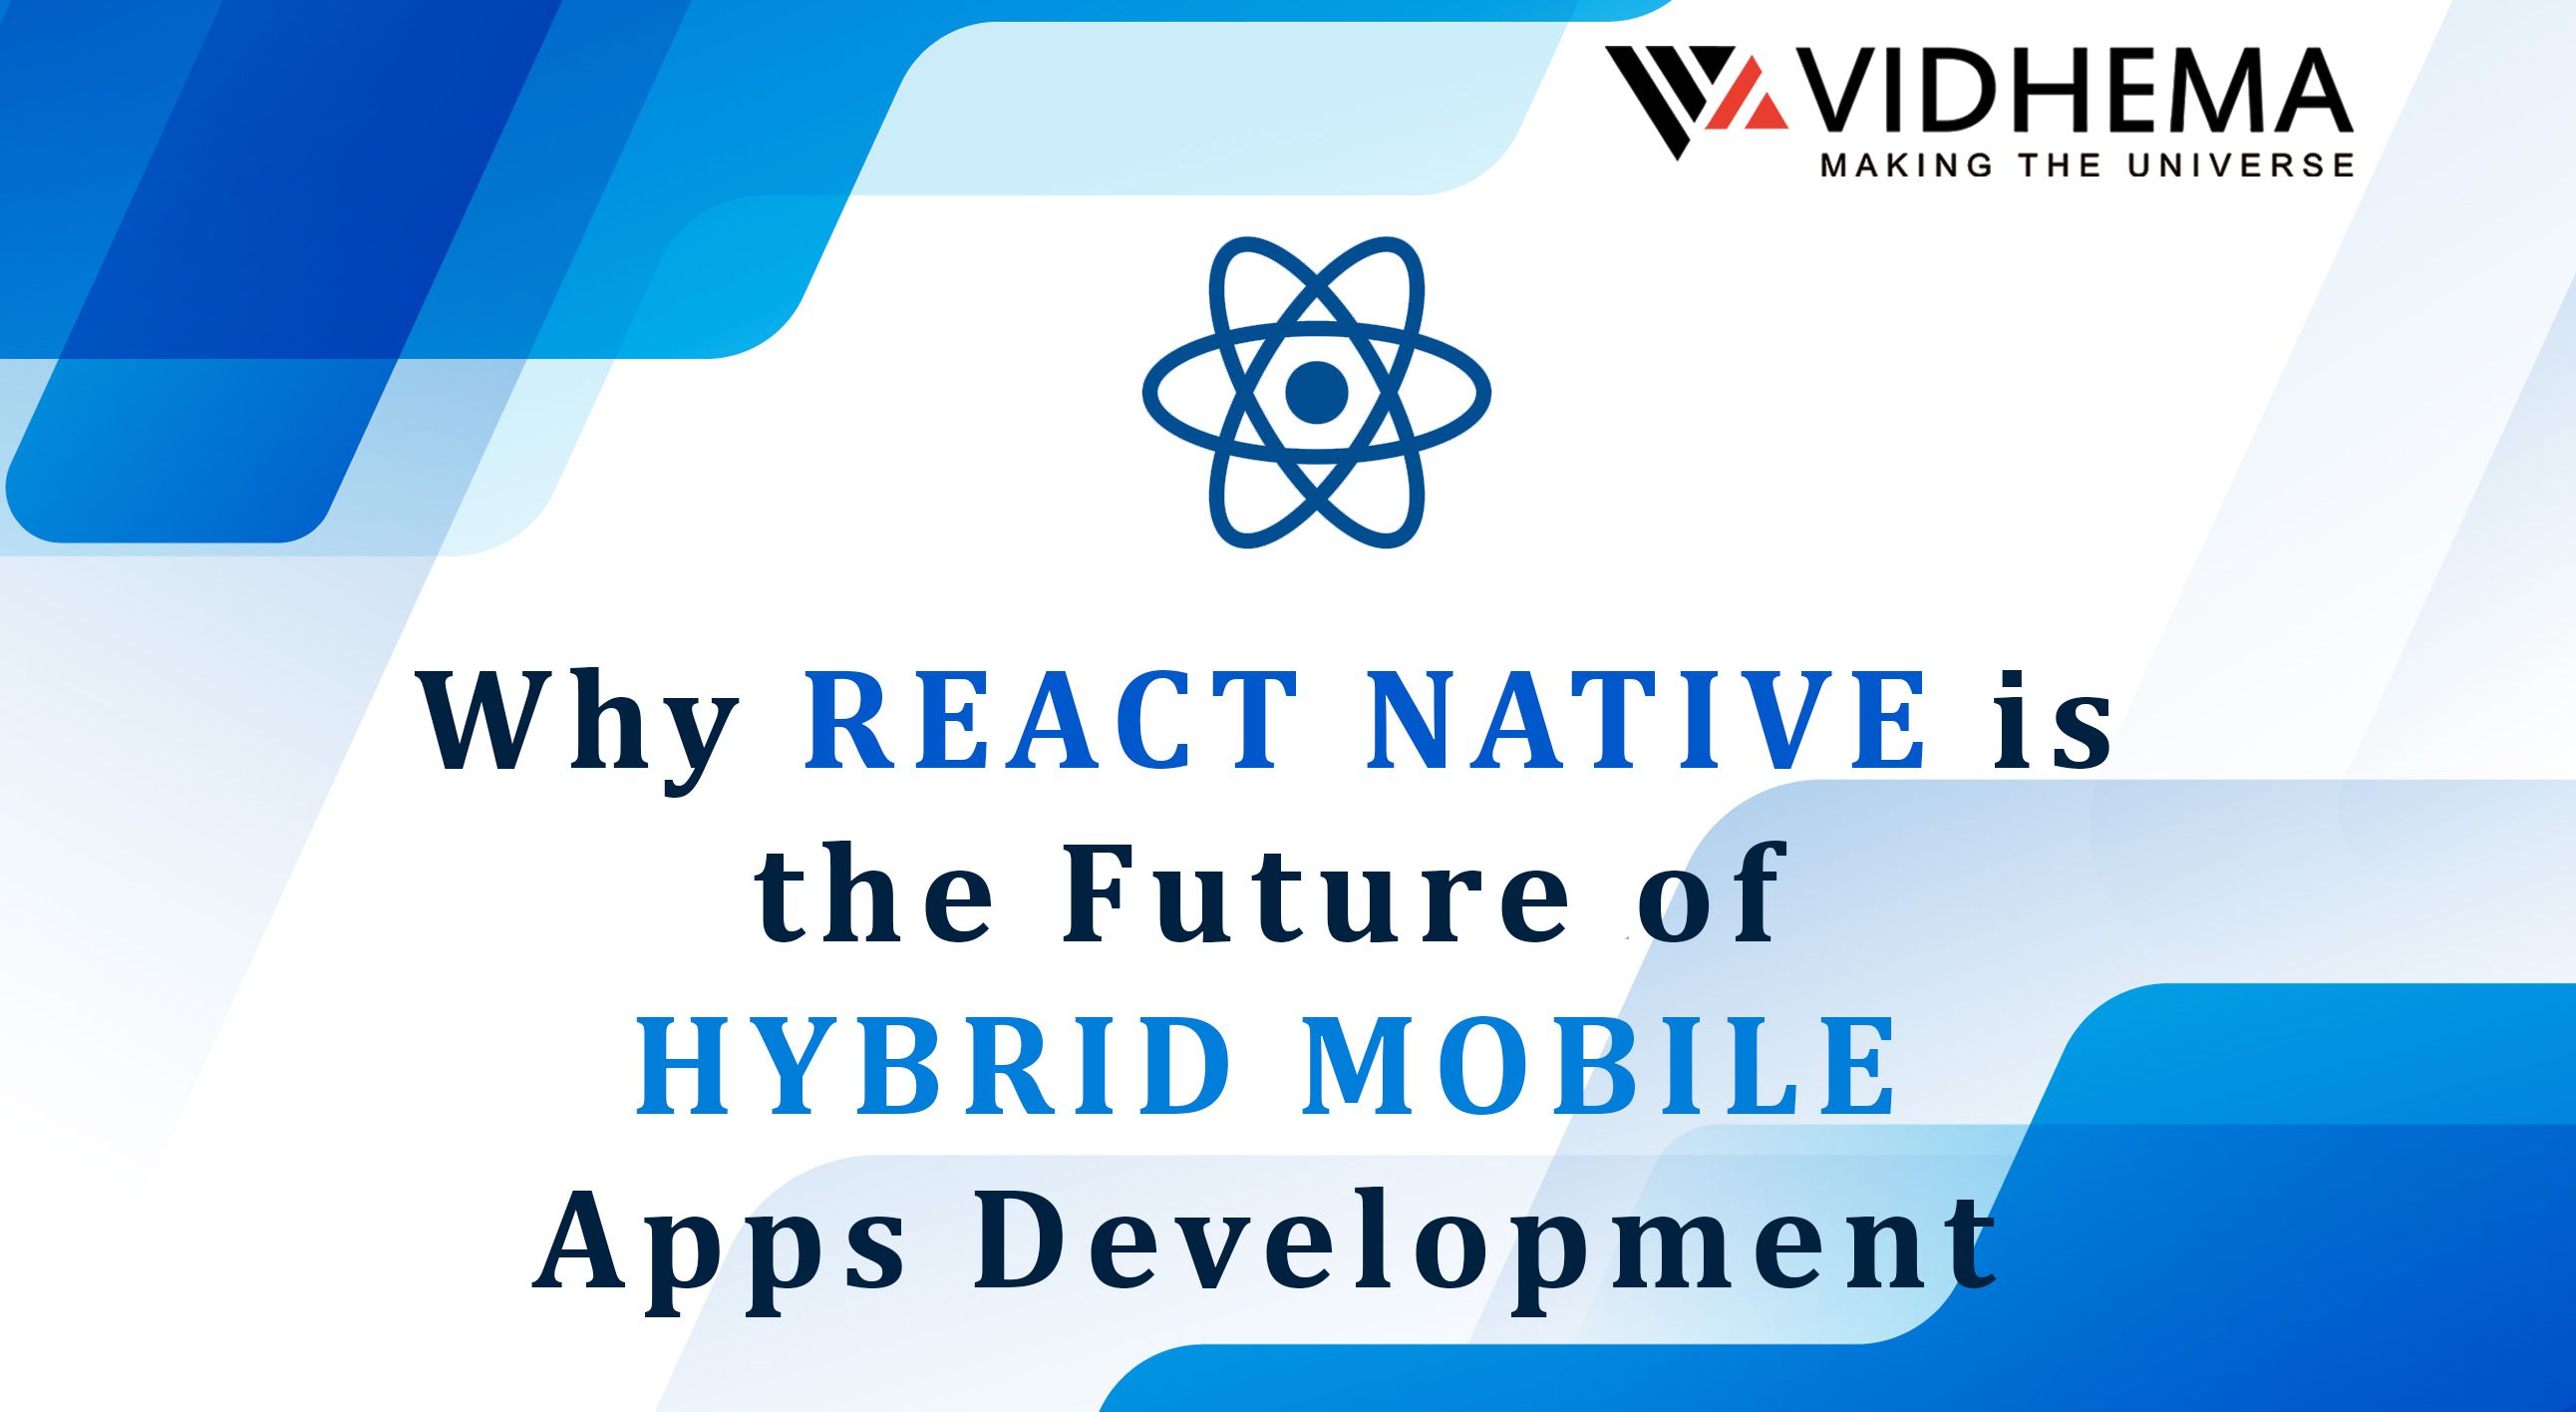 Why React Native Is the Future of Hybrid Mobile Apps Development?